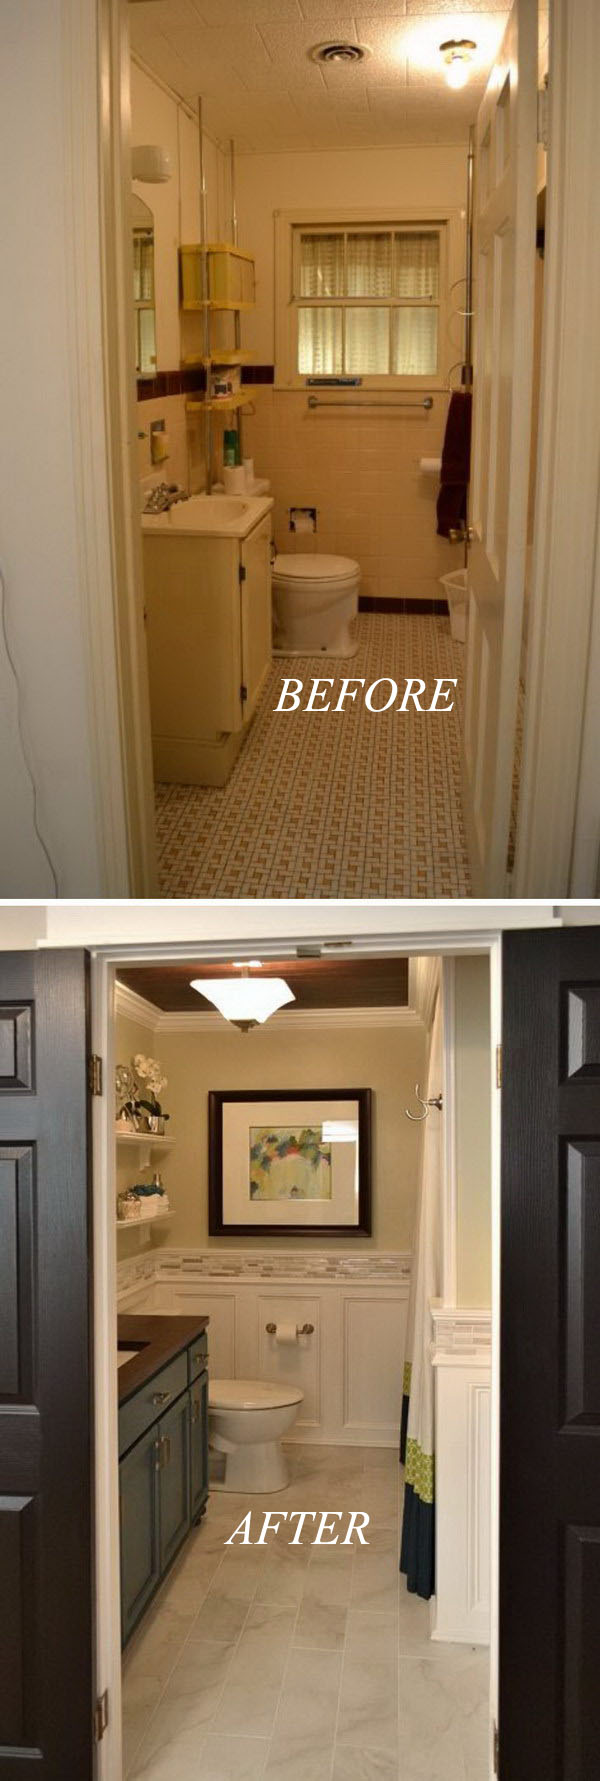 33 Inspirational Small Bathroom Remodel Before and After ... on Small Bathroom Renovation  id=71926